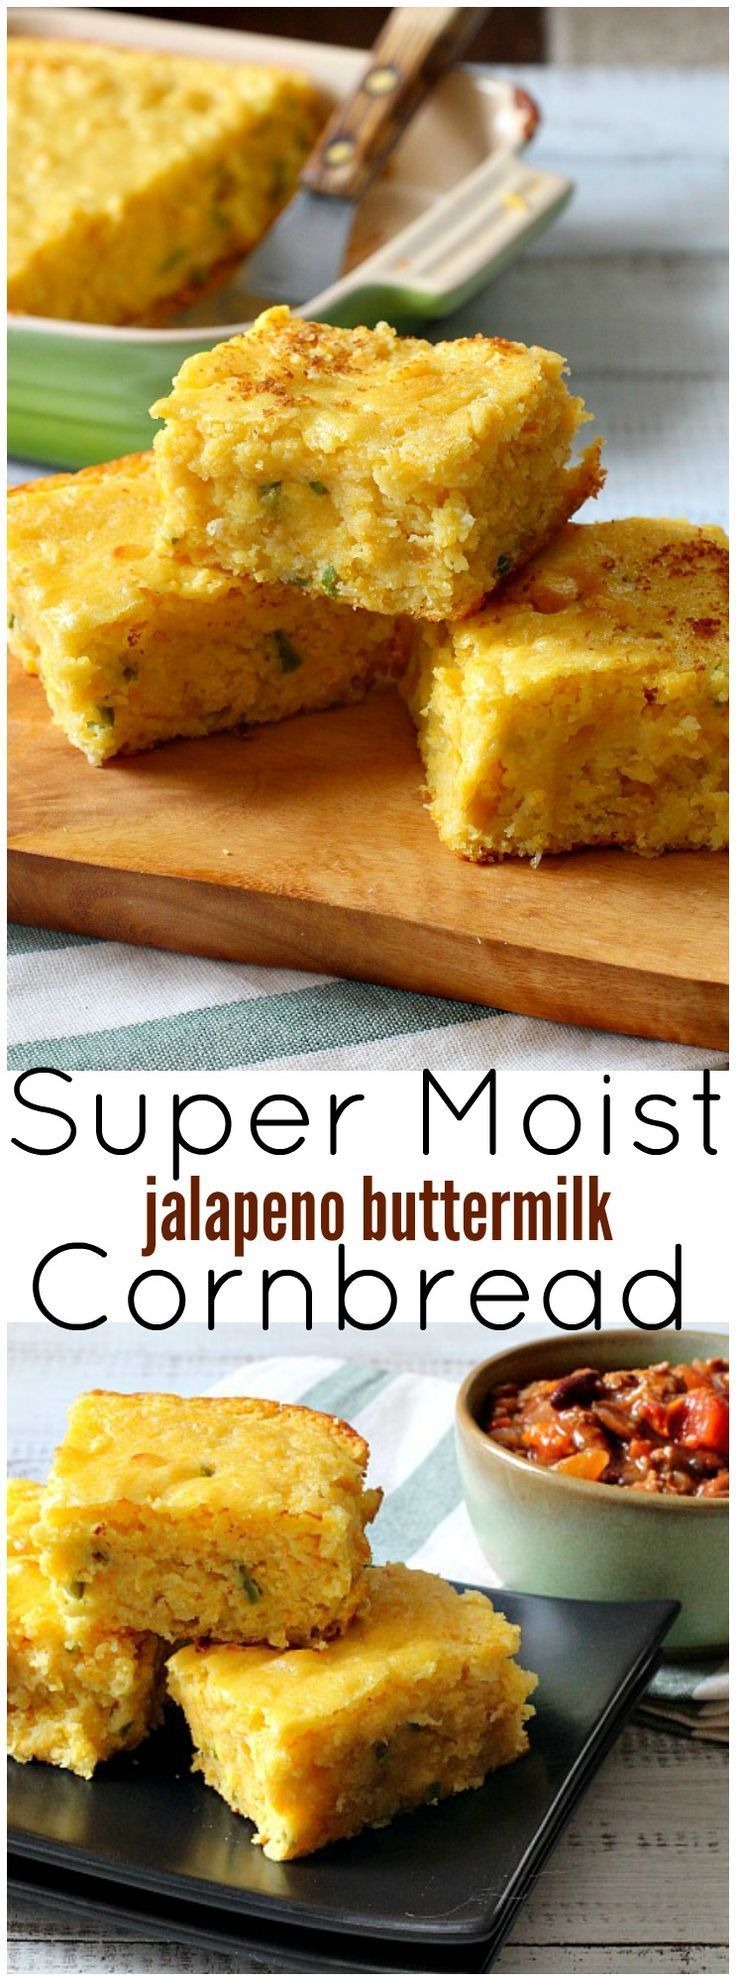 You'd almost swear there was pudding in this Super Moist Cornbread recipe. Using creamed corn and Munster cheese is one of the secrets to this homemade buttermilk cornbread recipe. Our family favorite. via /lannisam/